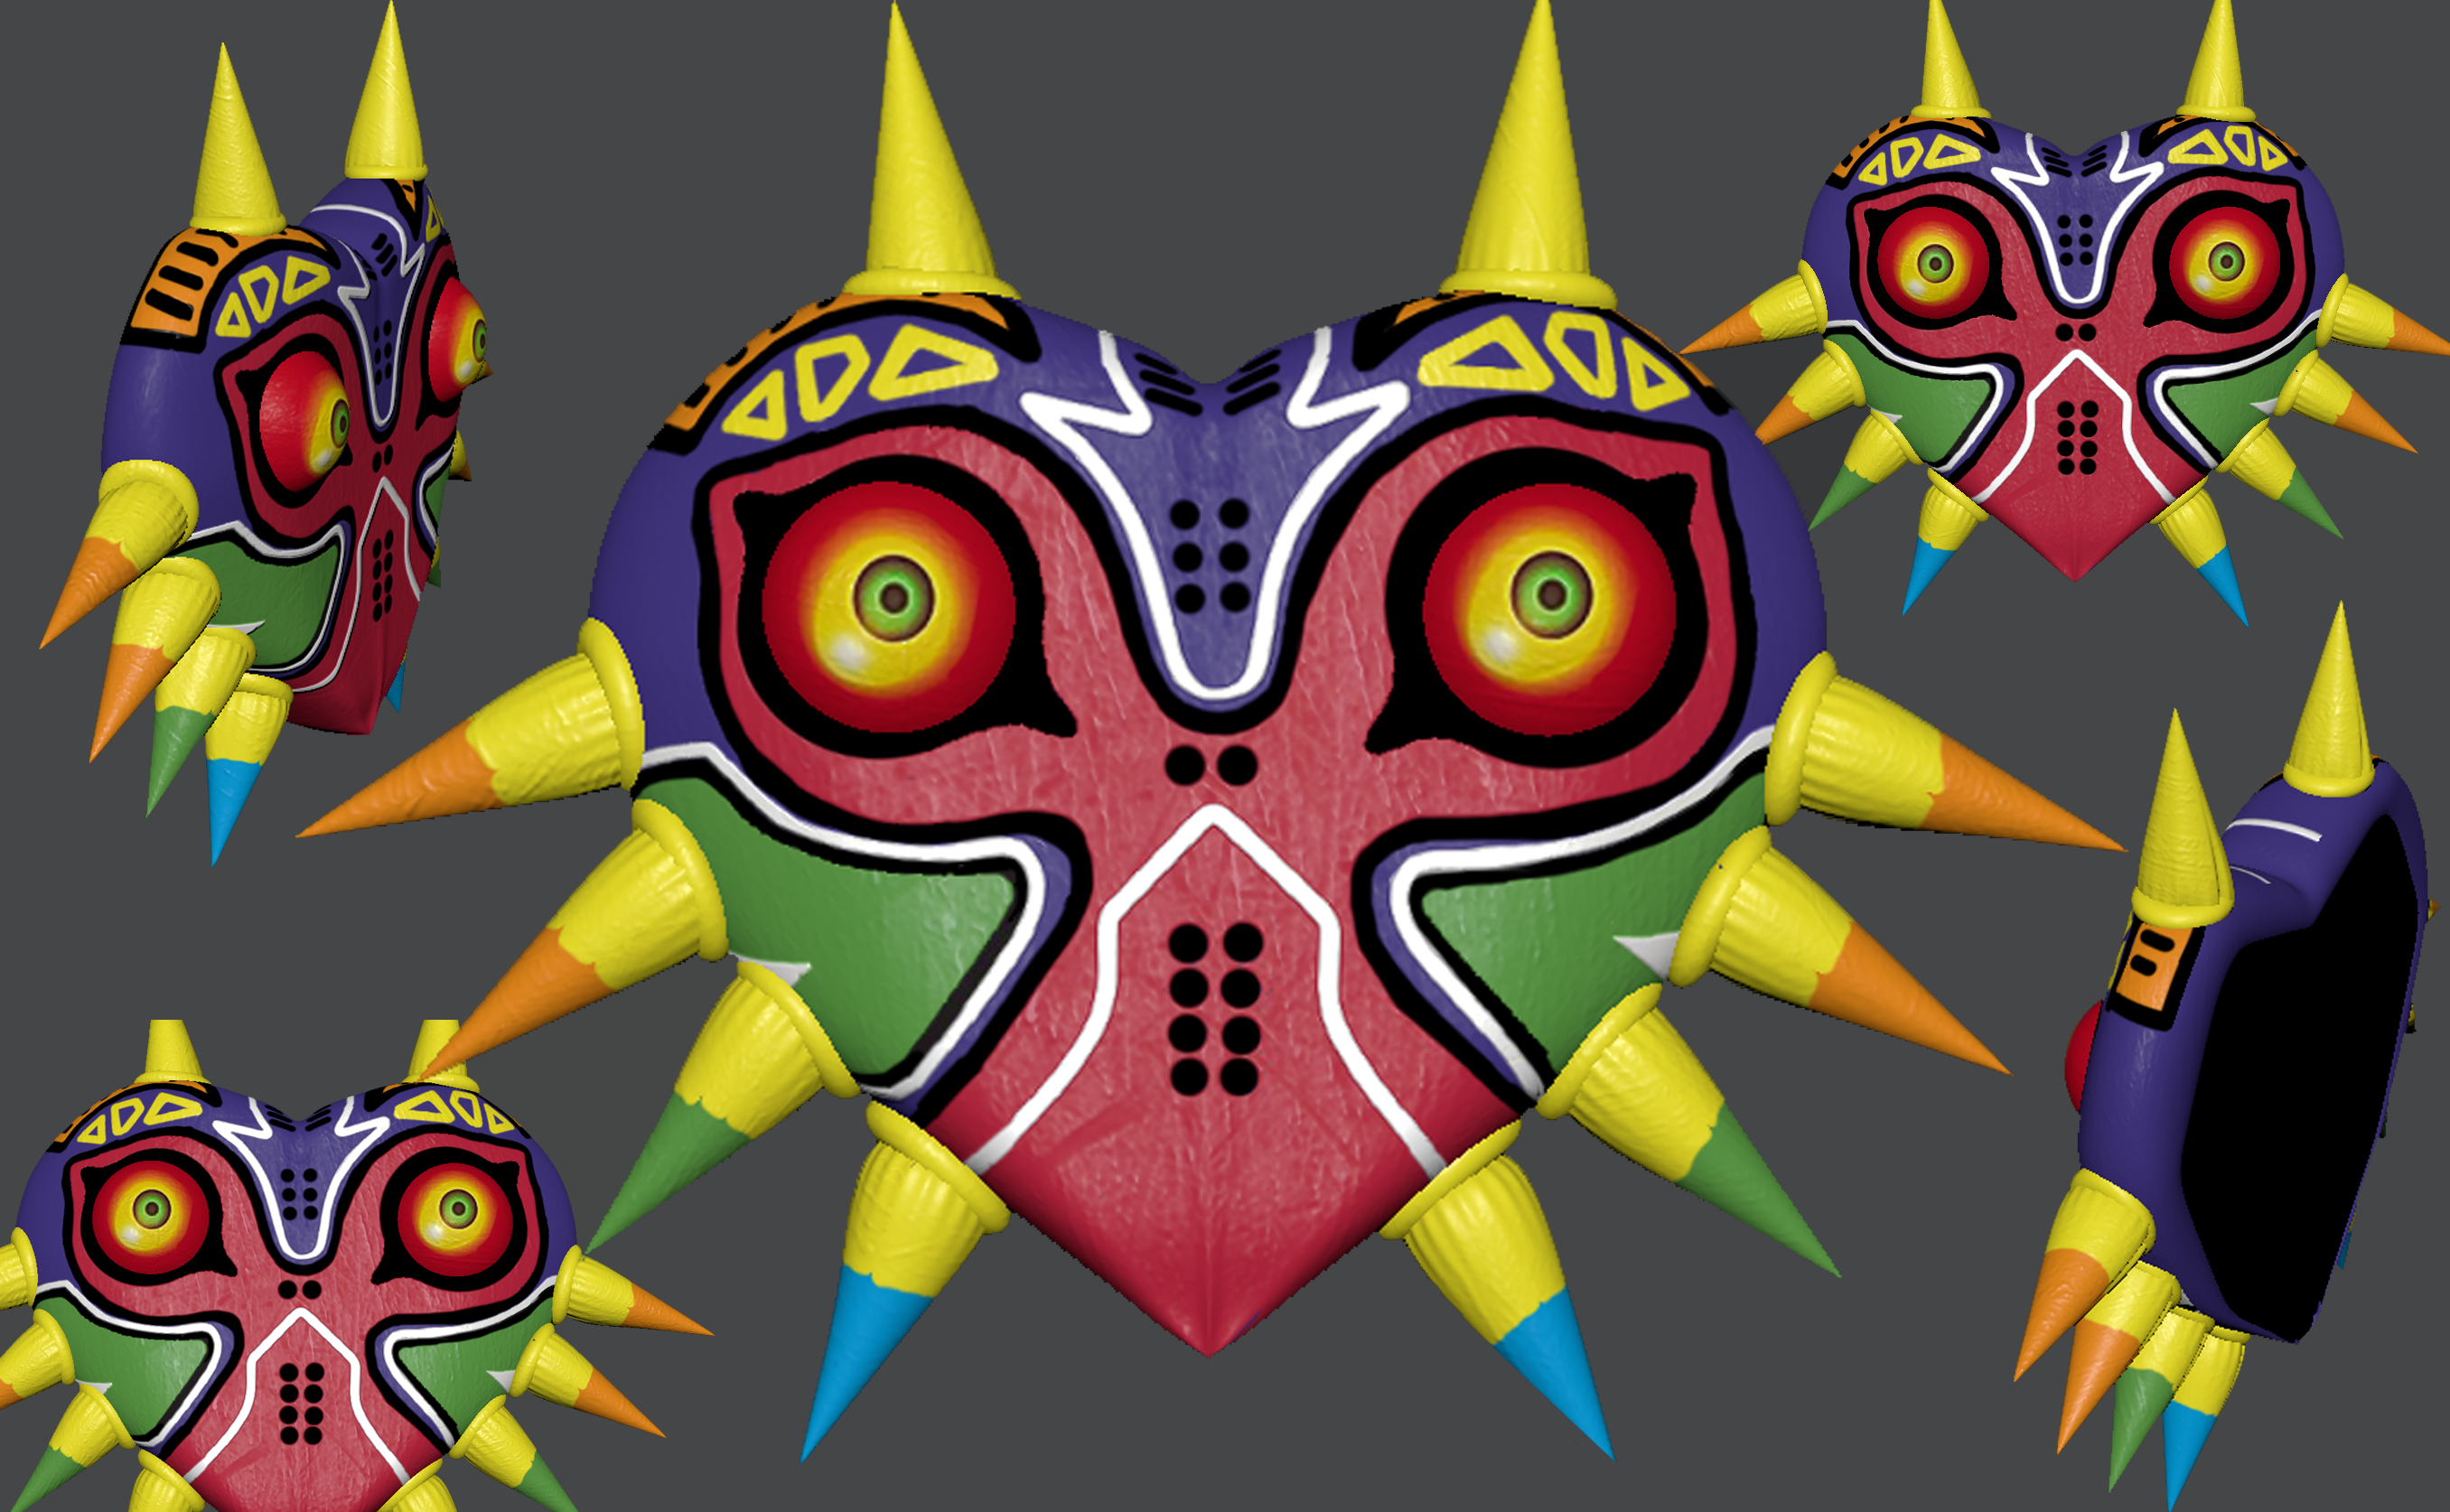 Majora's mask 3D model showing all different angles